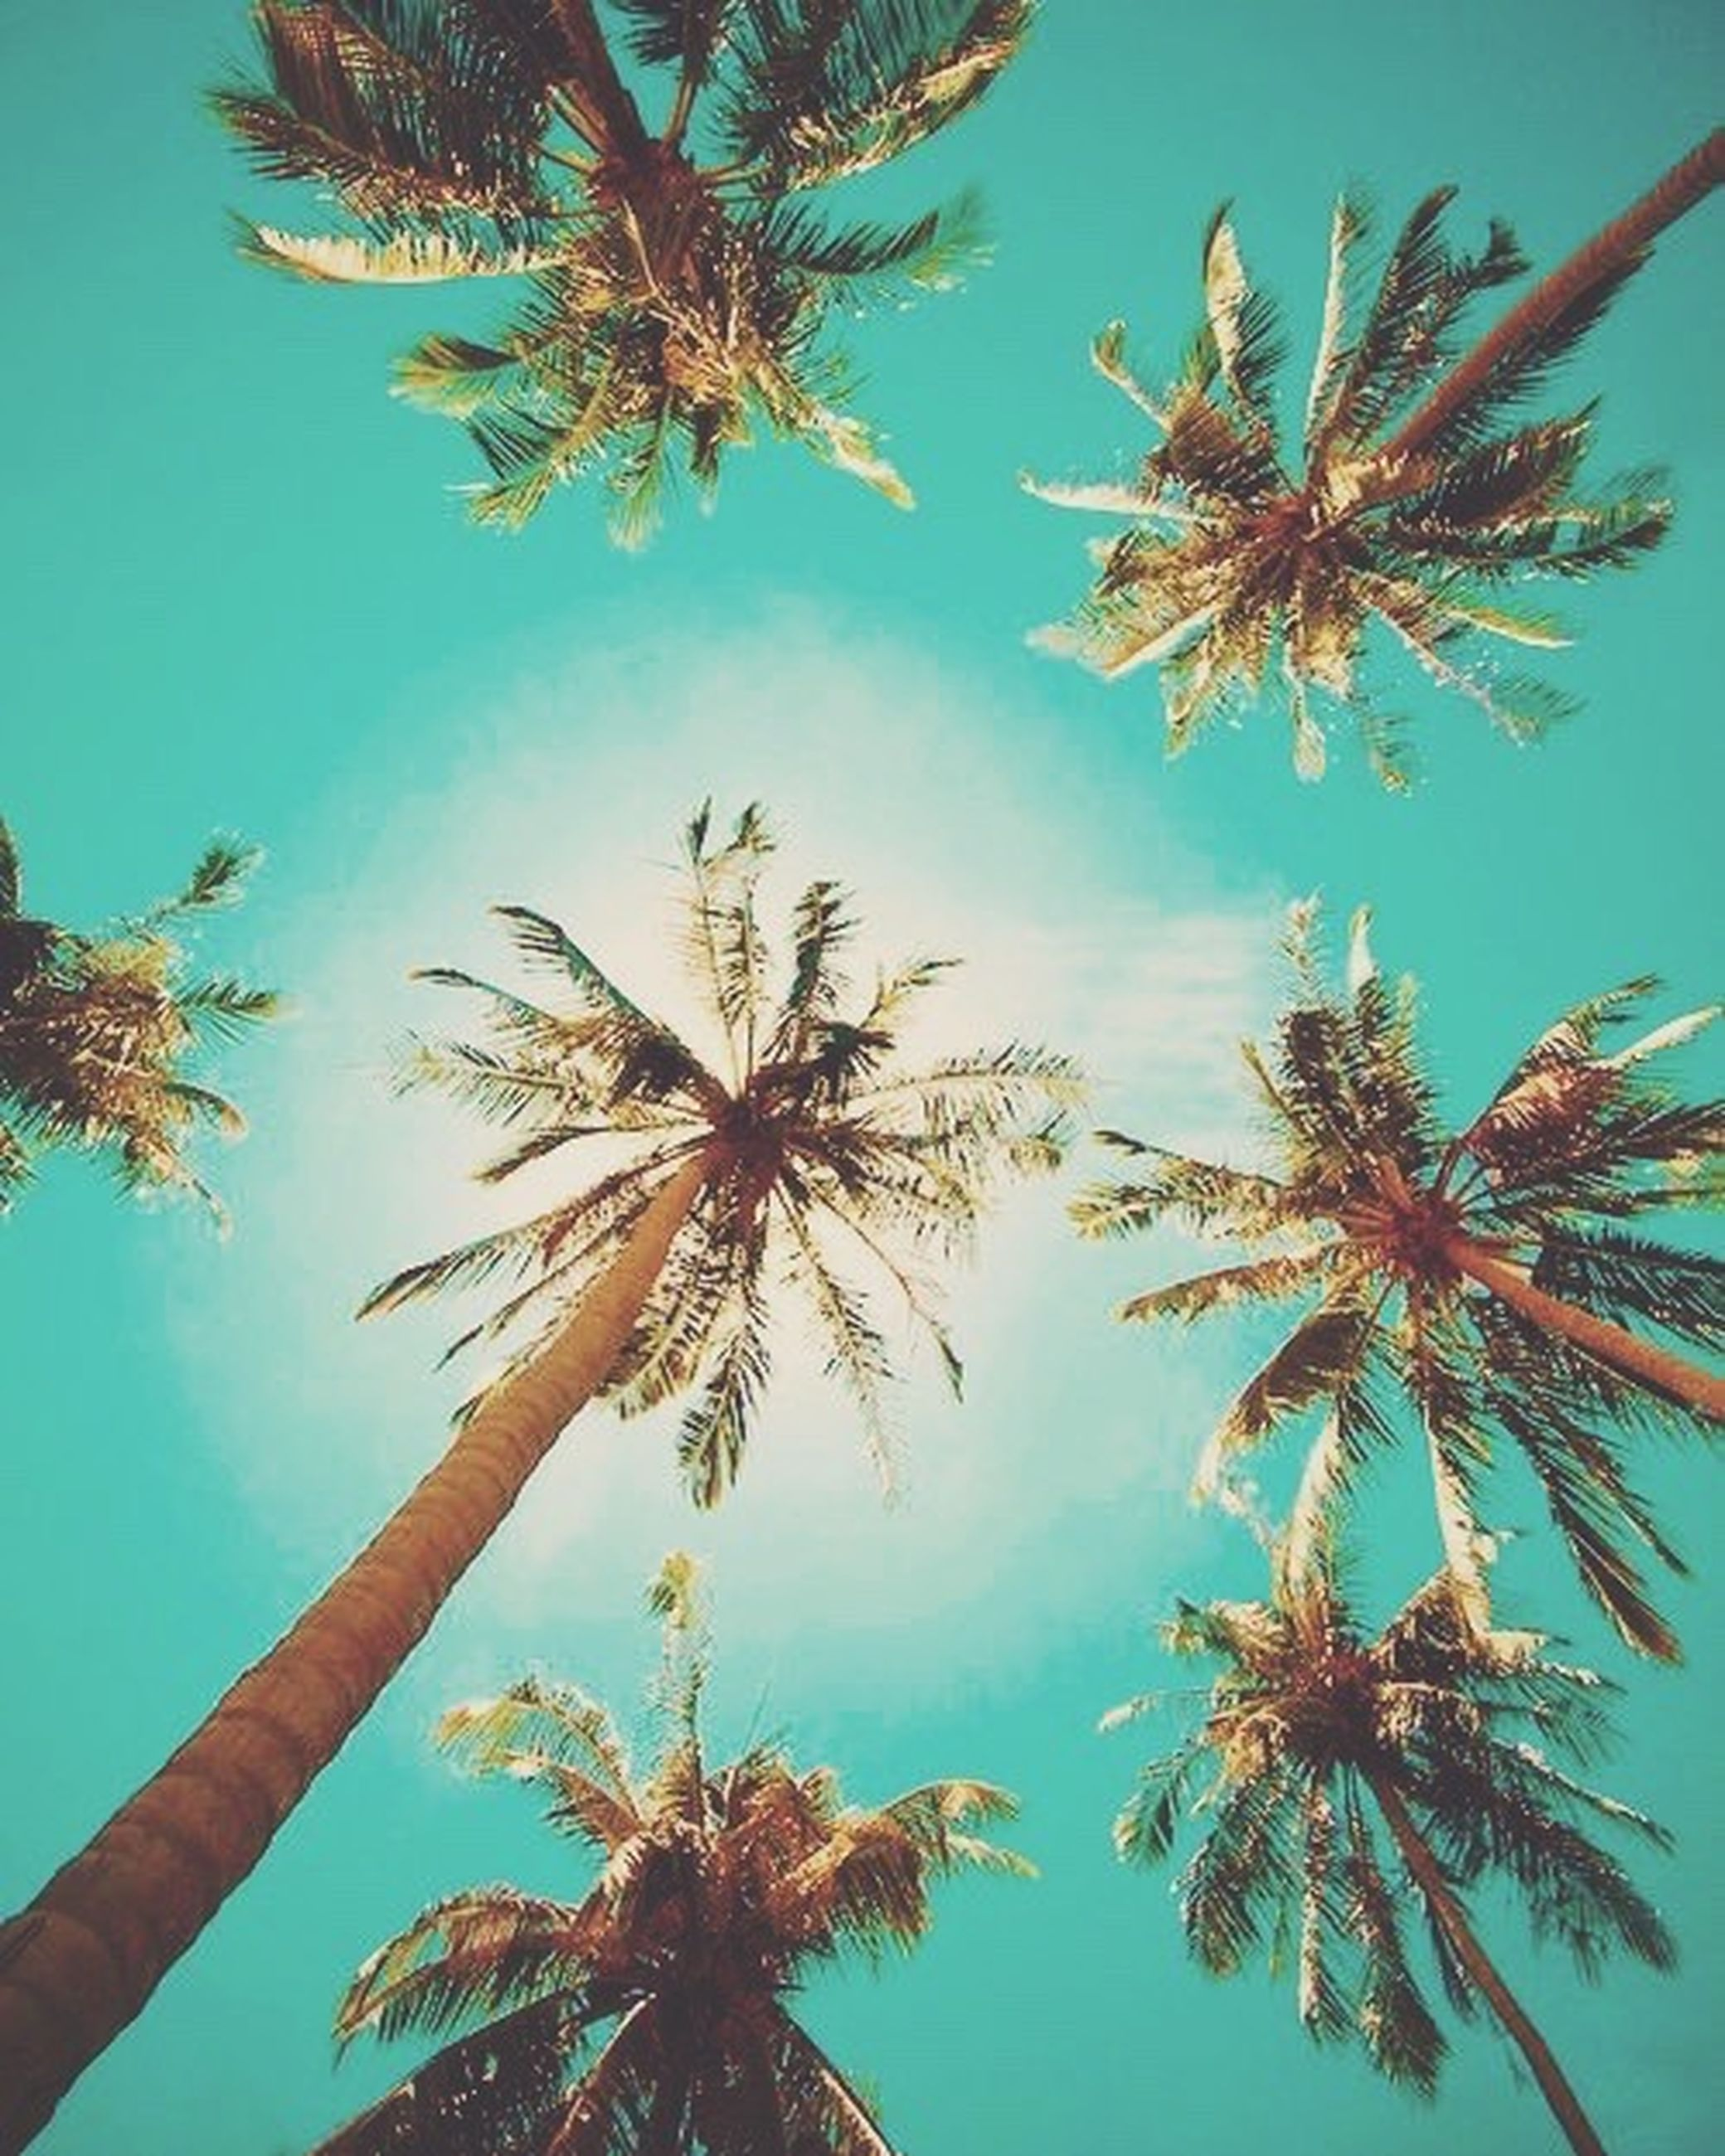 low angle view, tree, palm tree, growth, blue, sky, branch, nature, tree trunk, beauty in nature, tranquility, clear sky, day, coconut palm tree, no people, outdoors, scenics, palm leaf, leaf, sunlight